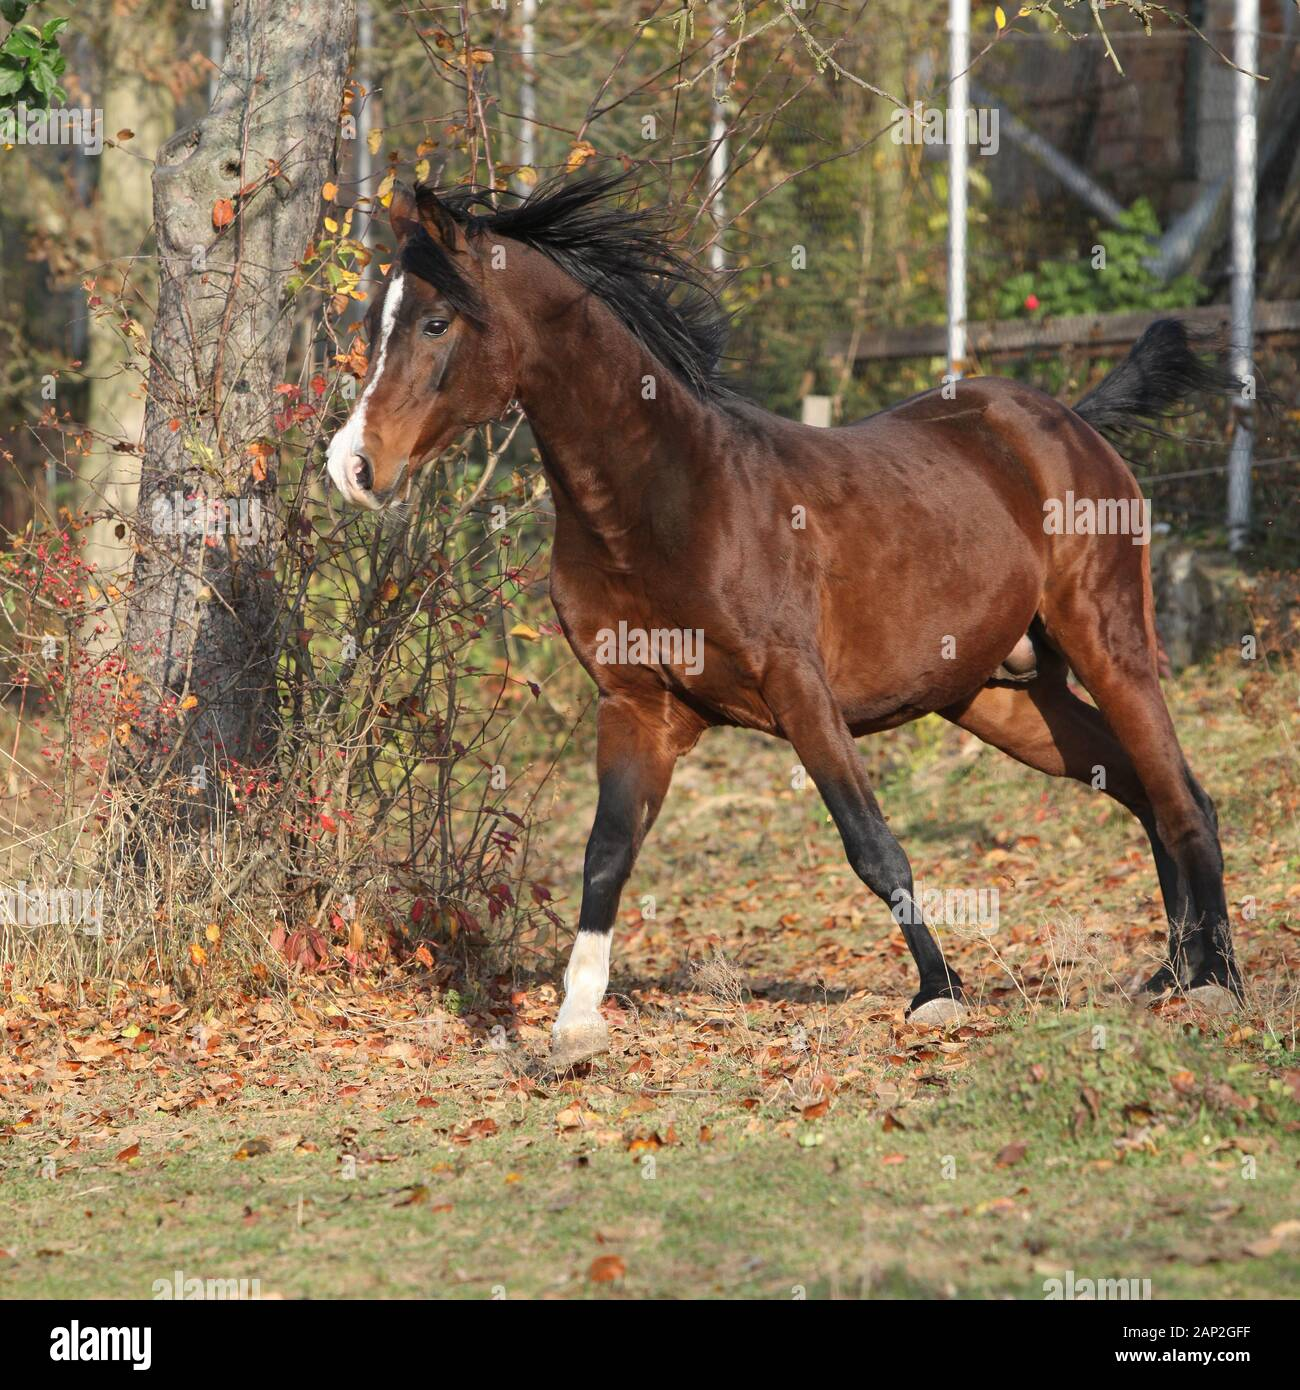 Brown Arabian Stallion Running In Paddock With Trees Stock Photo Alamy